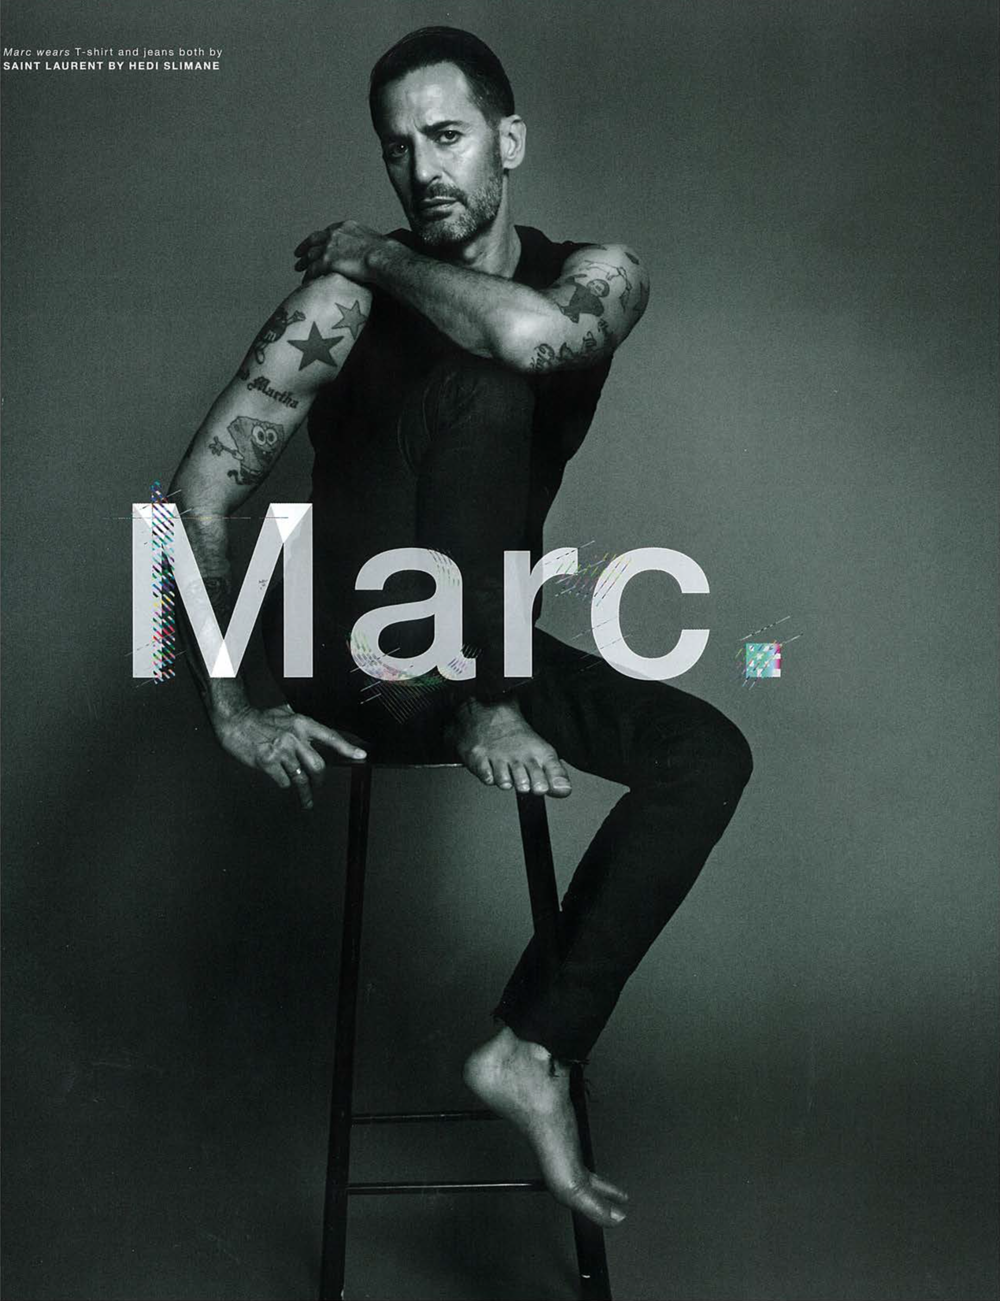 MARC - VIA LOVE MAGAZINE